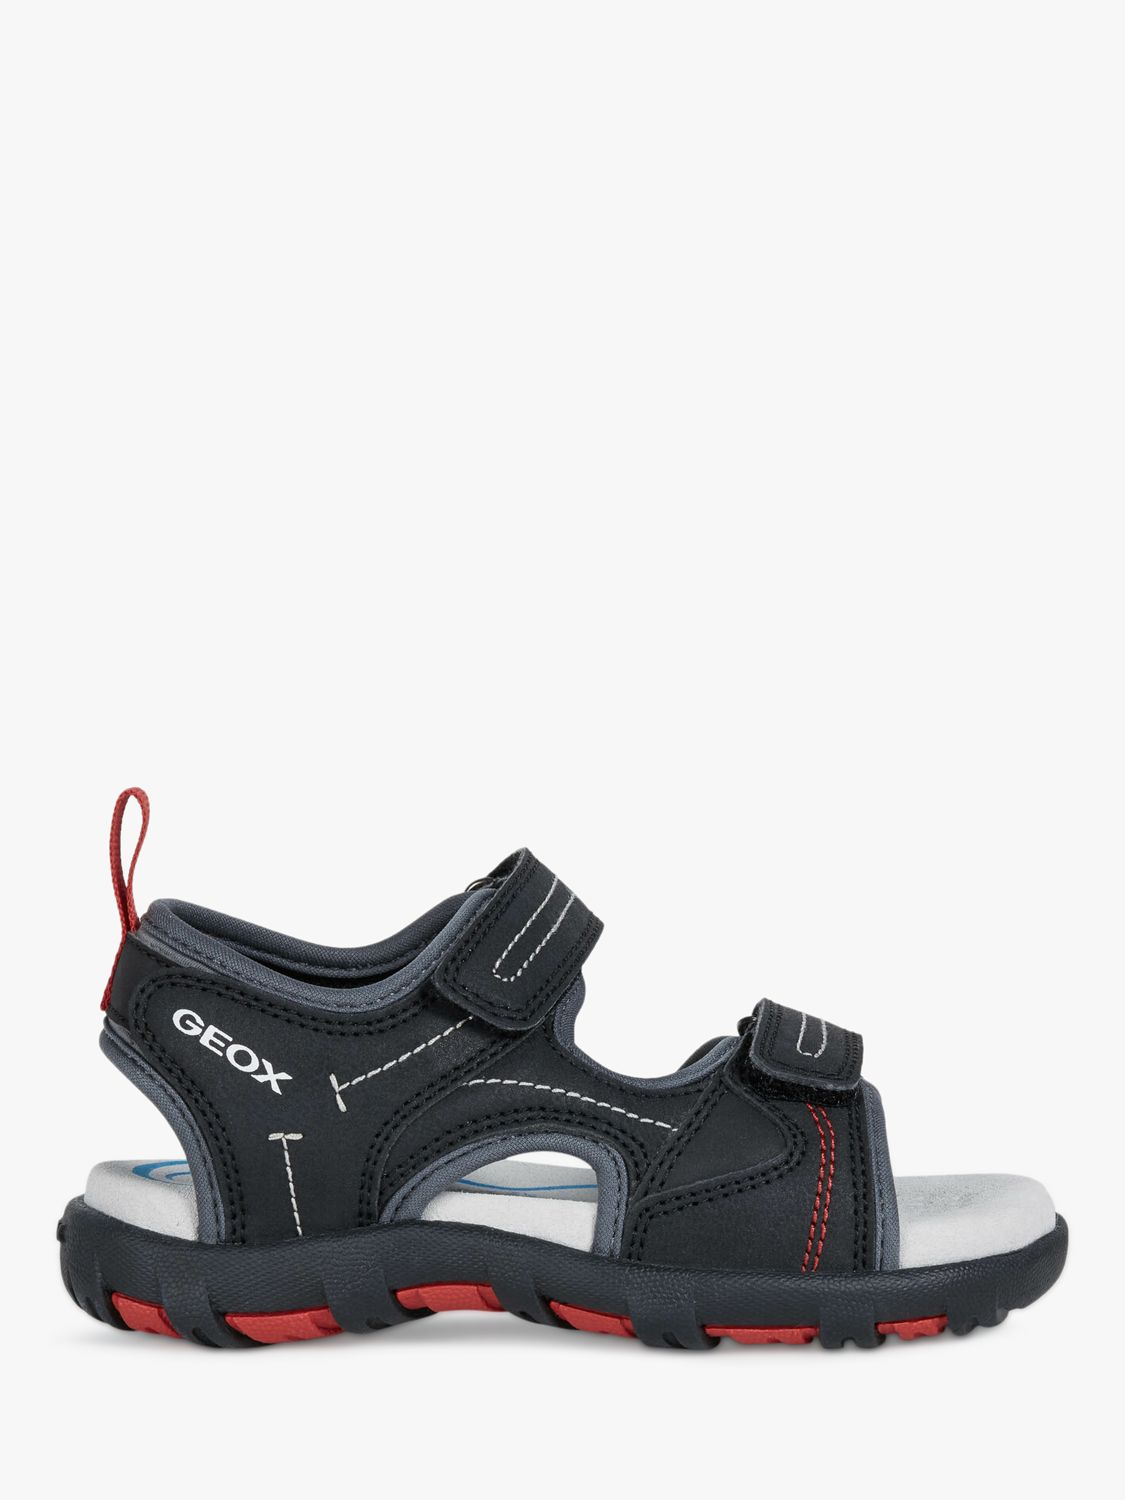 Geox Geox Children's Pianeta Riptape Sandals, Black/Red